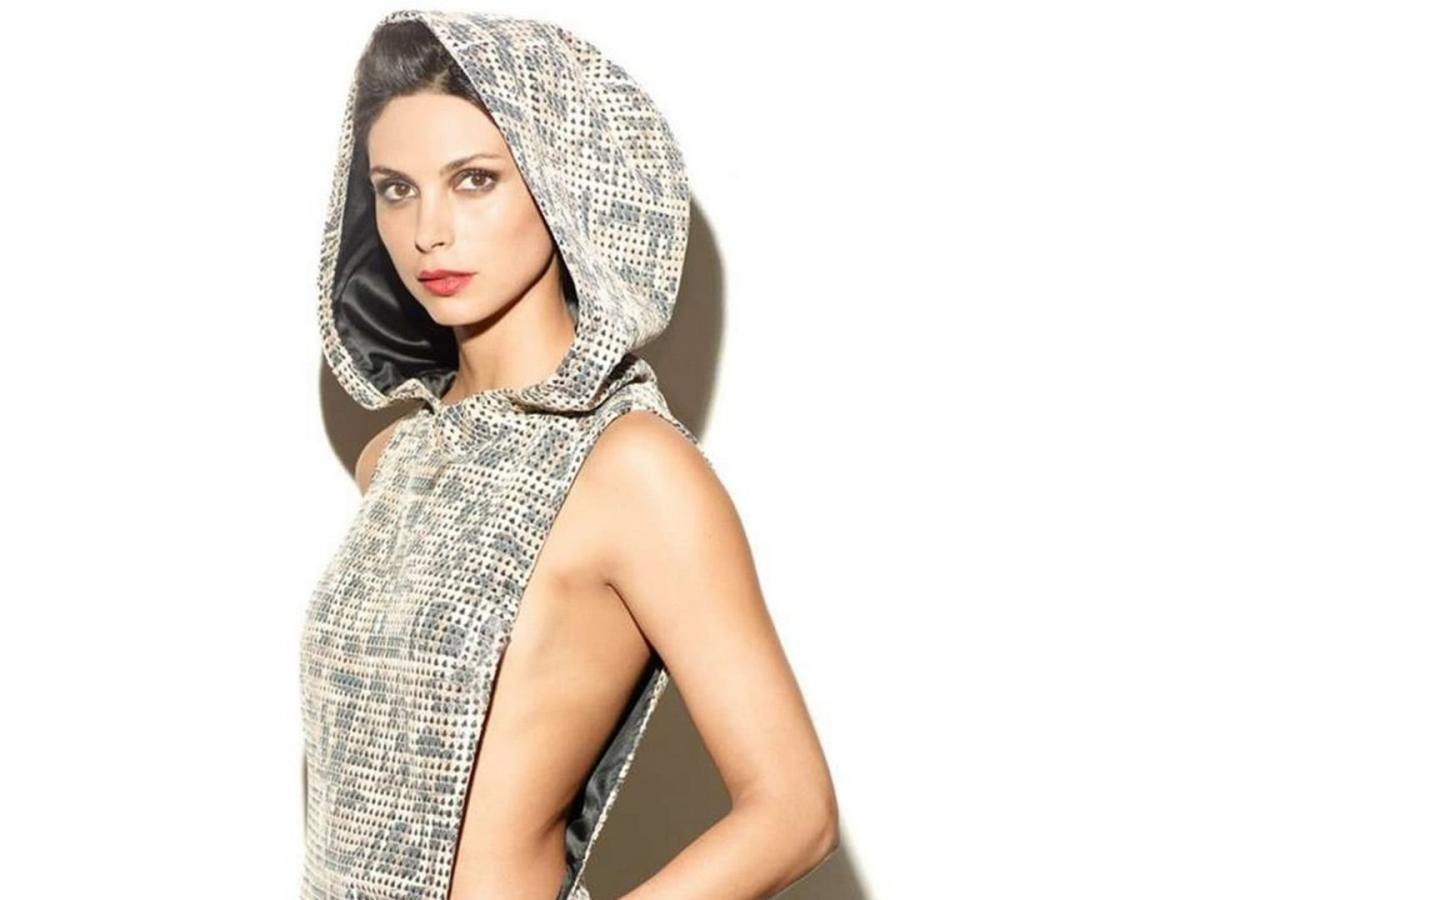 1440x900 - Morena Baccarin Wallpapers 13